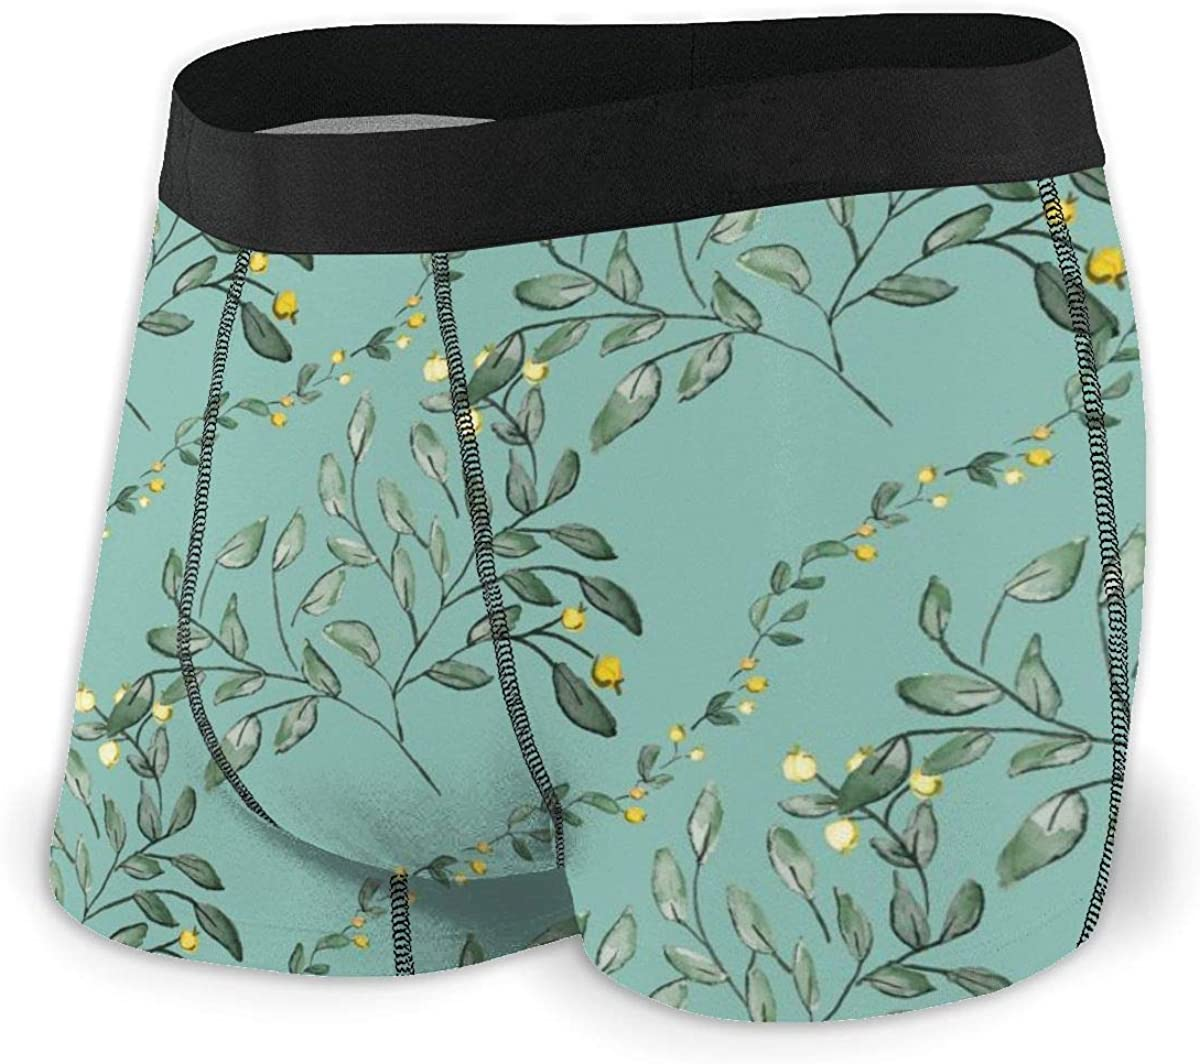 Mens Boxer Briefs Provence Country Floral Leaf Bikini Underwear Stretch Low Rise Trunks Boys Underpants